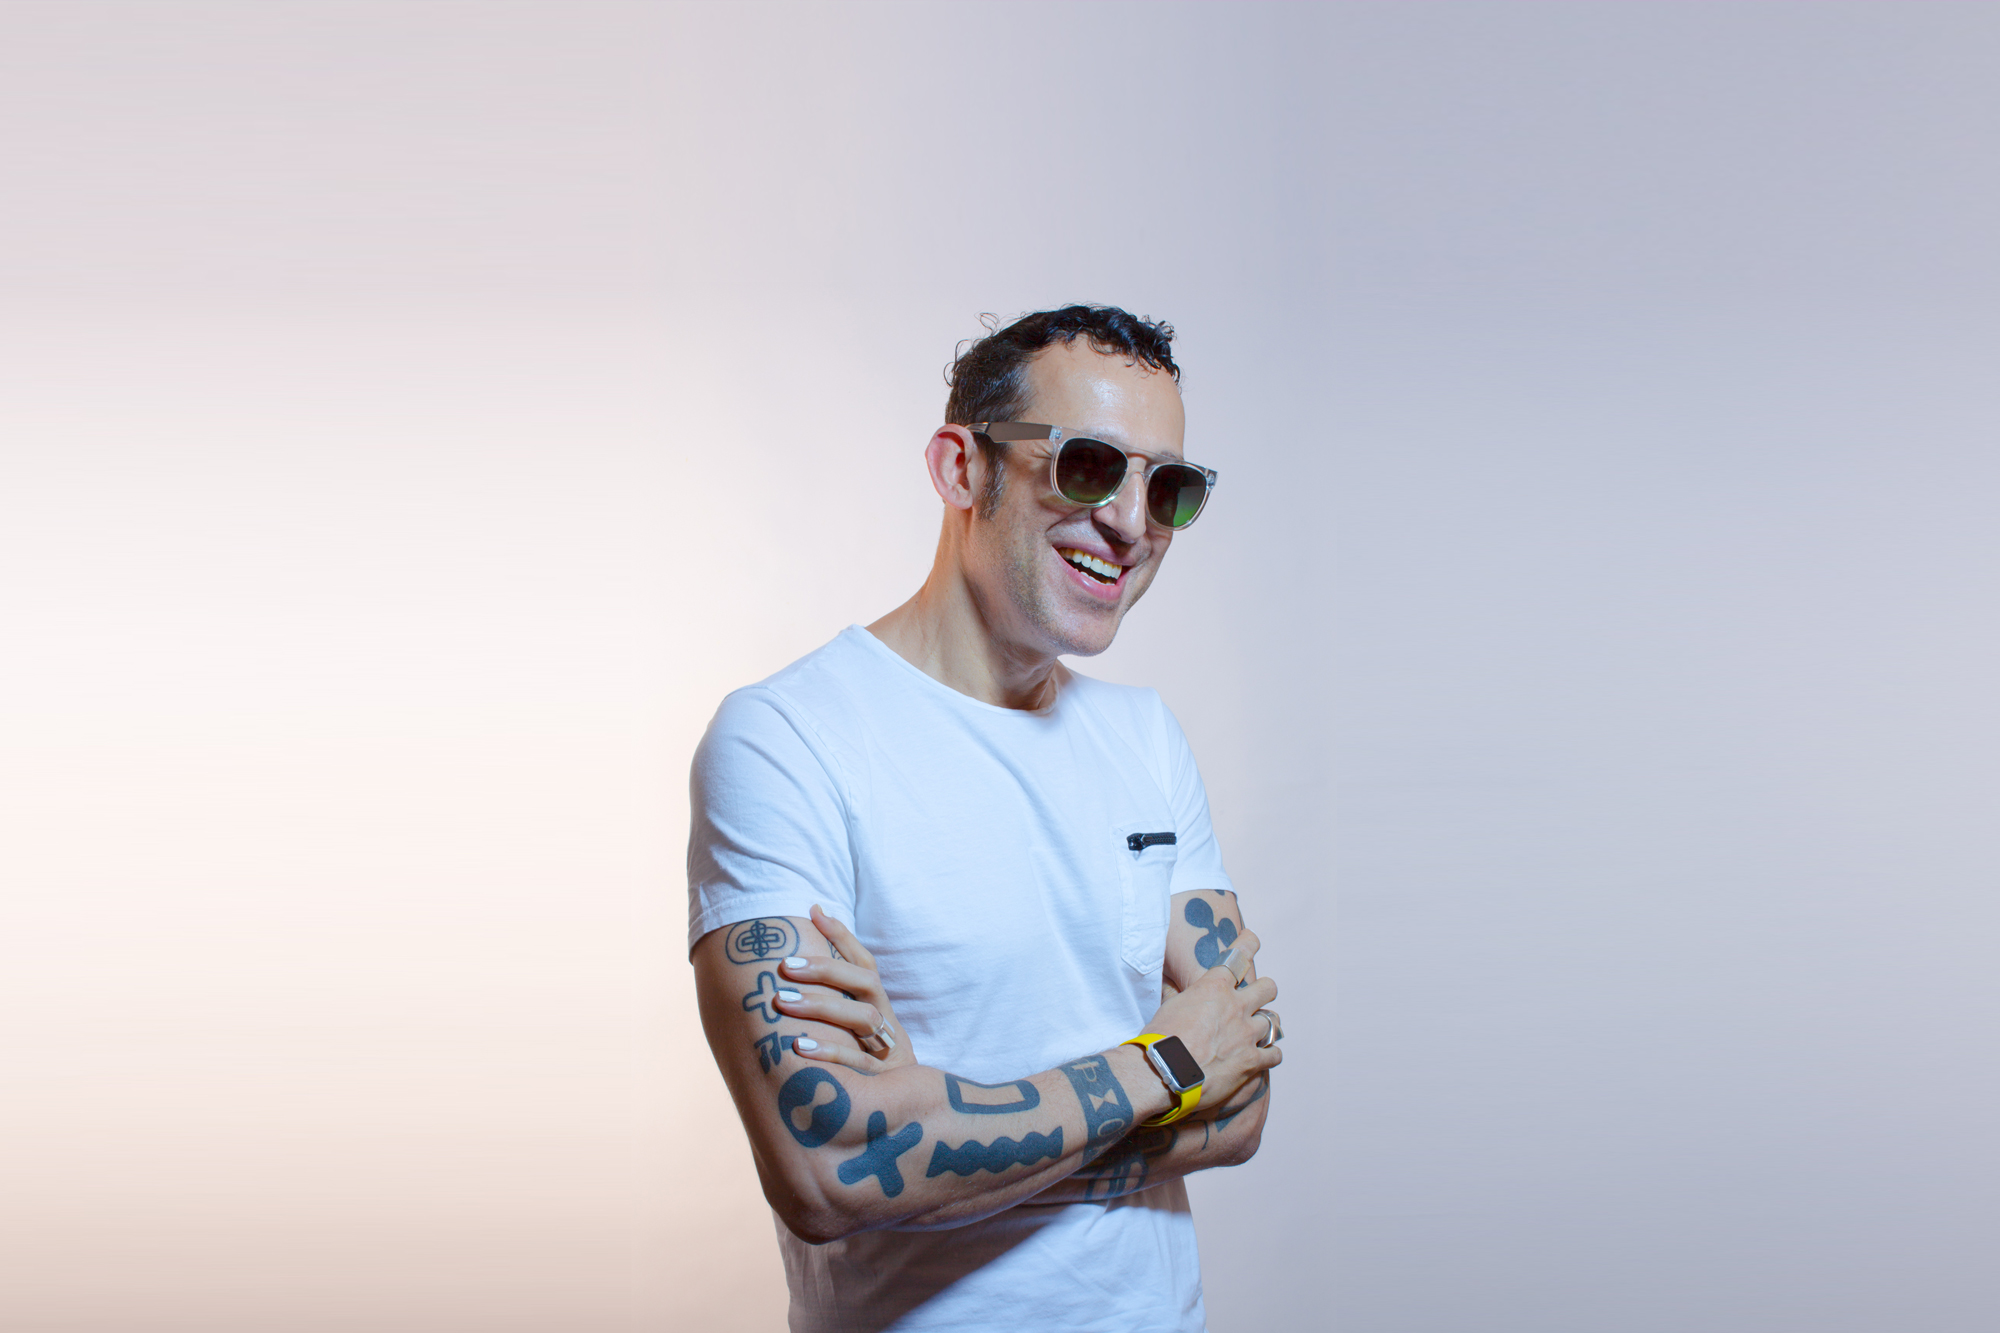 Karim Rashid wants you to realize how poorly designed everything you own is